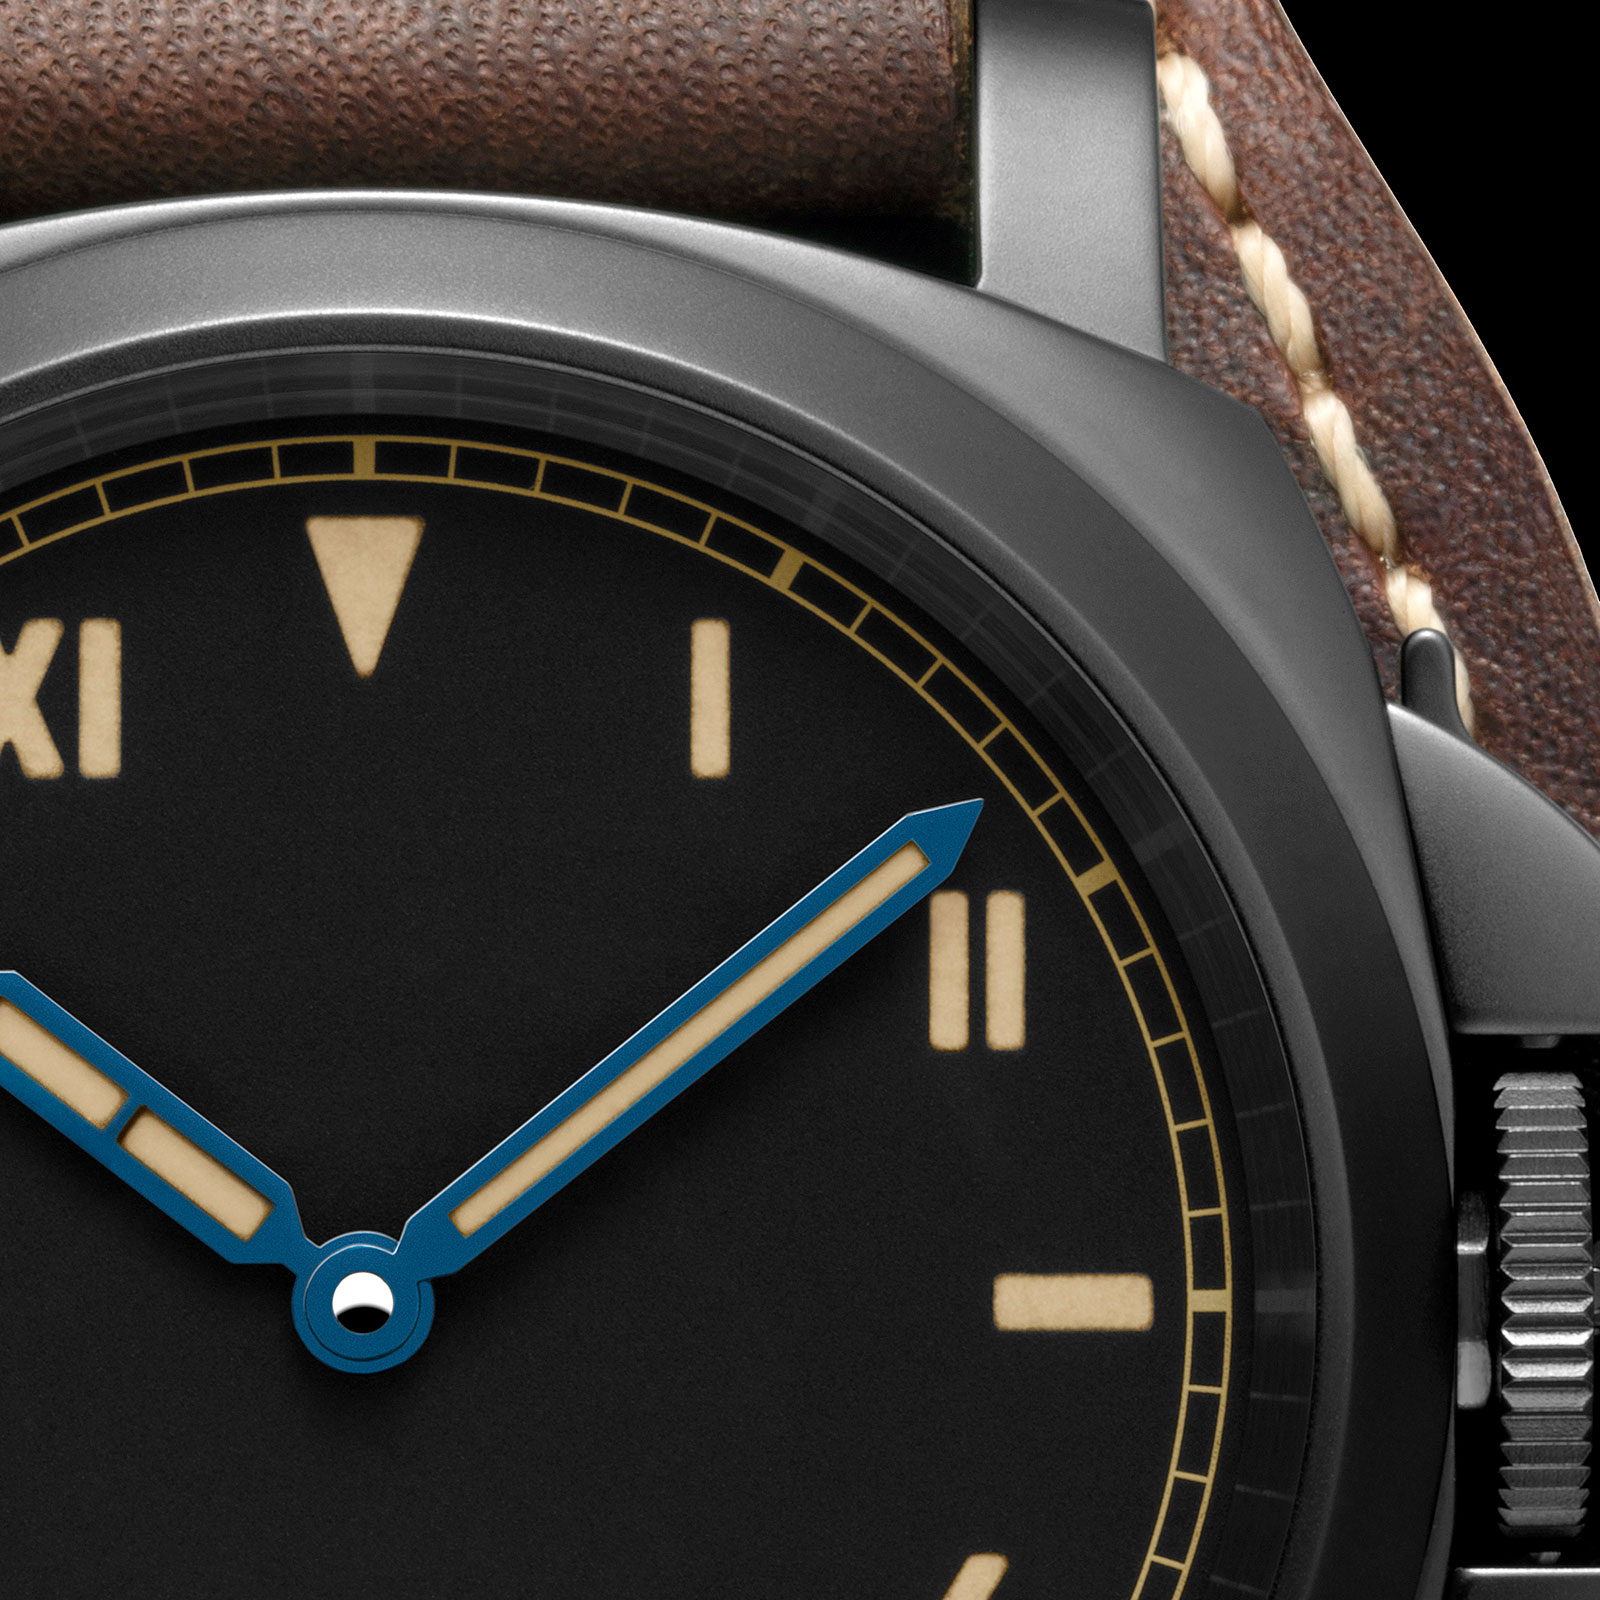 Panerai Panerai Luminor California 8 Days DLC PAM 779 6